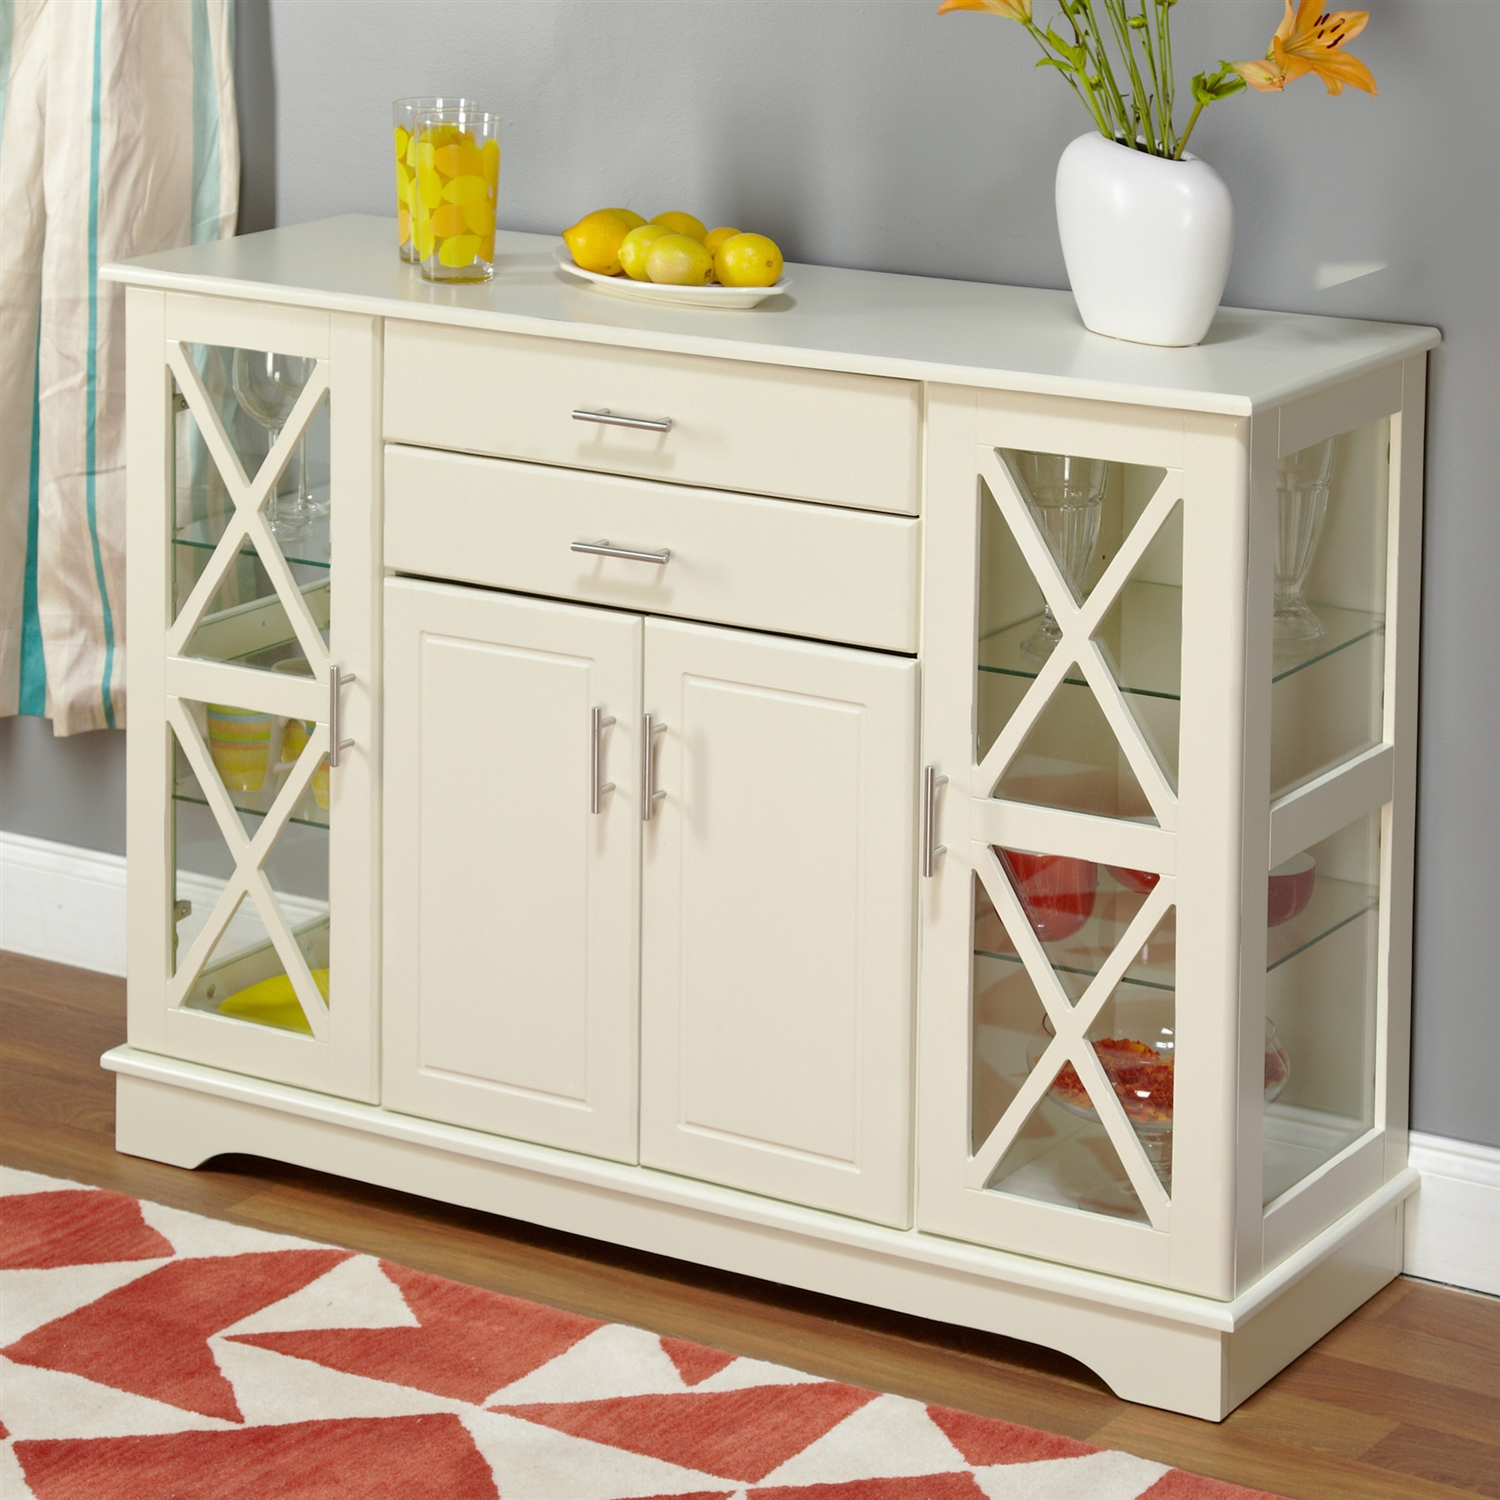 White wood buffet sideboard cabinet with glass display doors white wood buffet sideboard cabinet with glass display doors planetlyrics Images